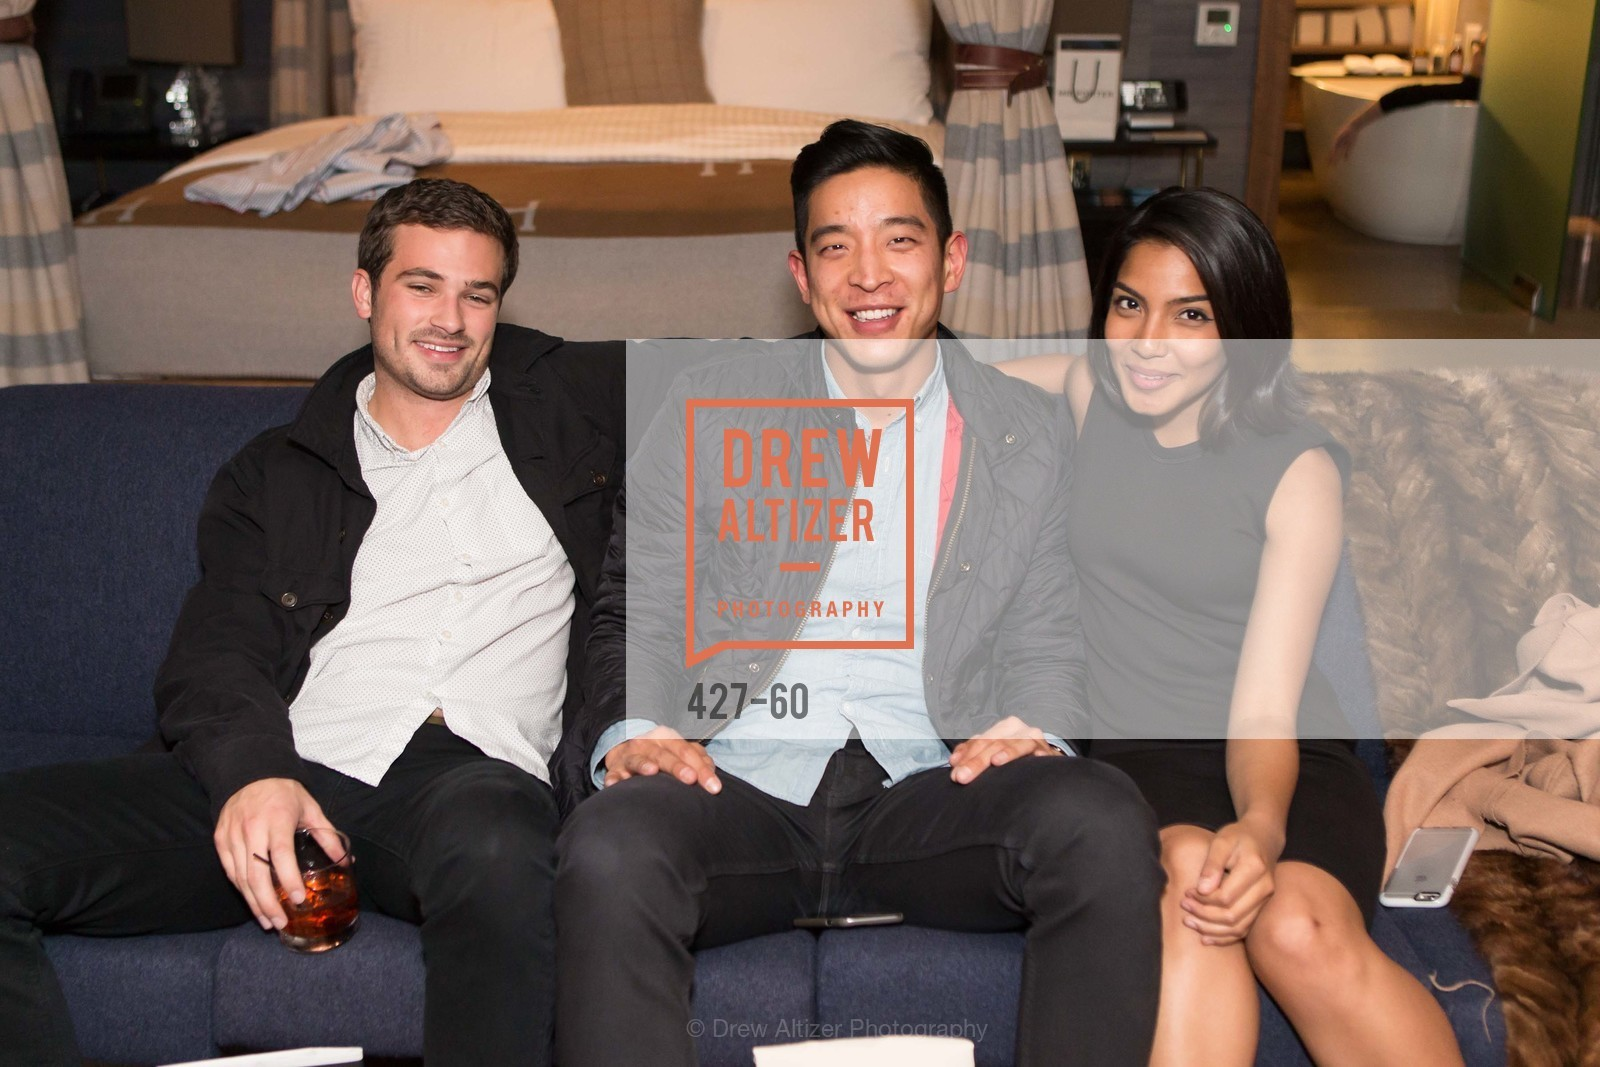 Jordan Bewtner, Alex Kim, Zara Rahim, MR PORTER Celebrate The San Francisco Issue of The Journal, The Battery Rooftop - The Battery SF, April 23rd, 2015,Drew Altizer, Drew Altizer Photography, full-service agency, private events, San Francisco photographer, photographer california